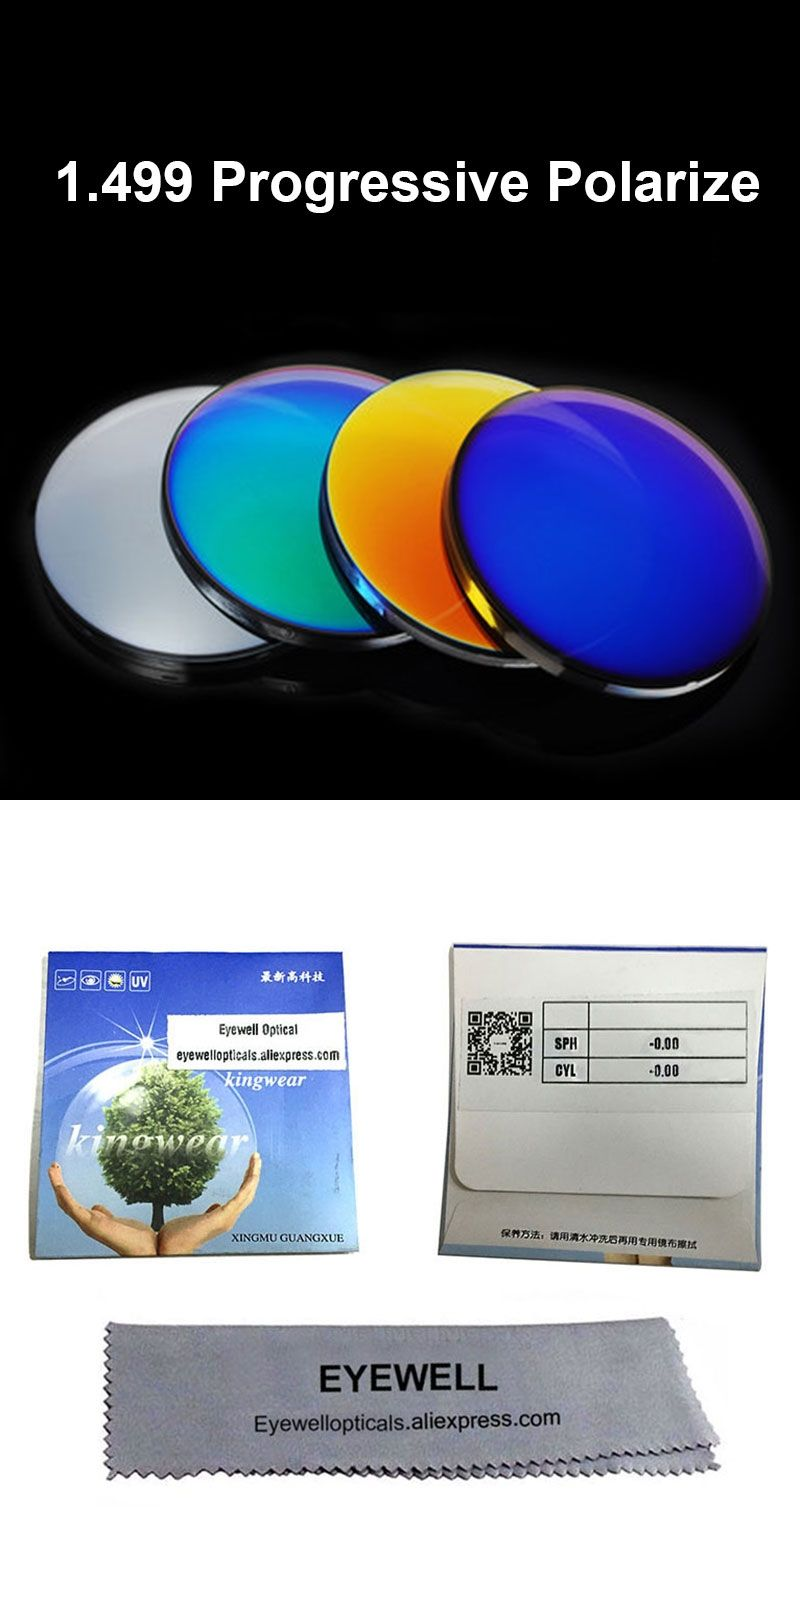 b8d33751d2c BAONONG 1.499 Progressive Polarized Mirror Coating Lenses Prescription Sun glasses  Optical Mirror Finish Lenses